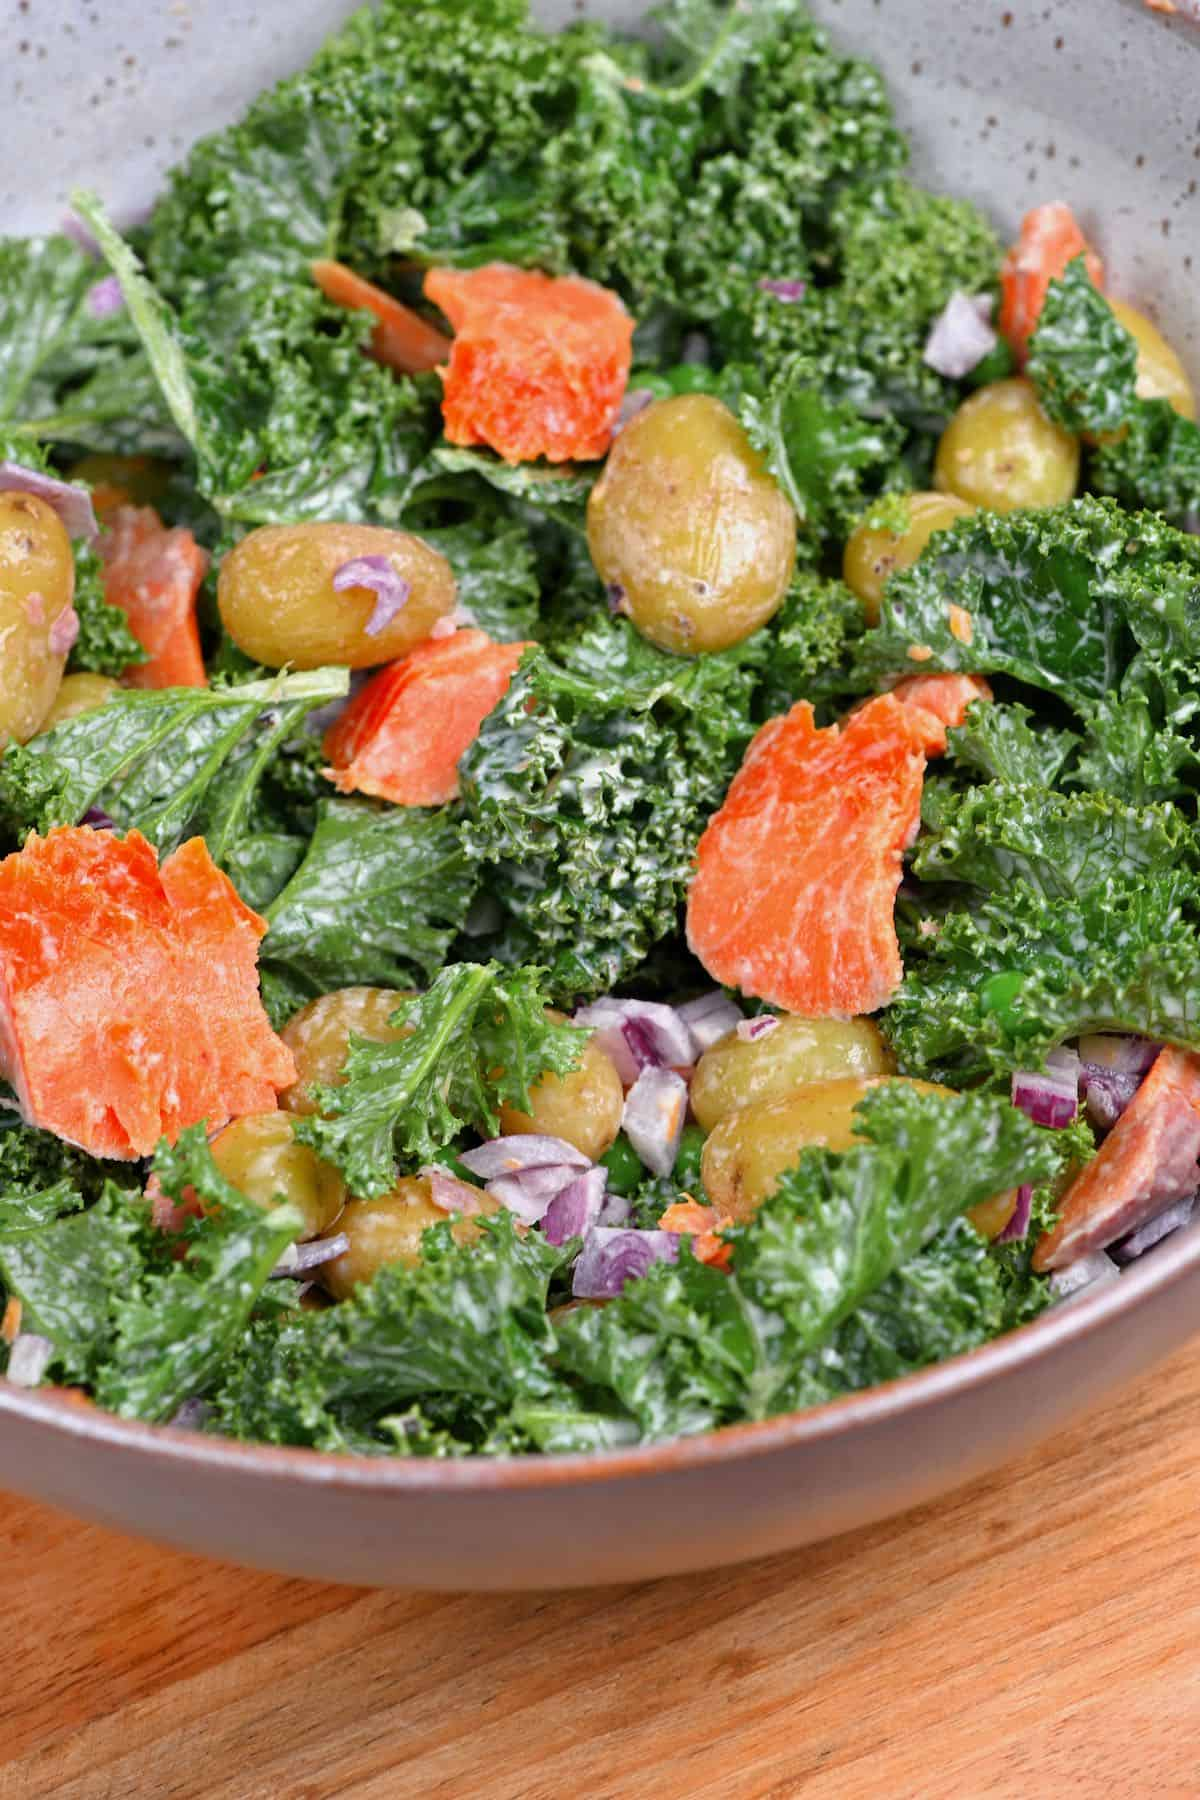 A bowl with potato kale and salmon salad